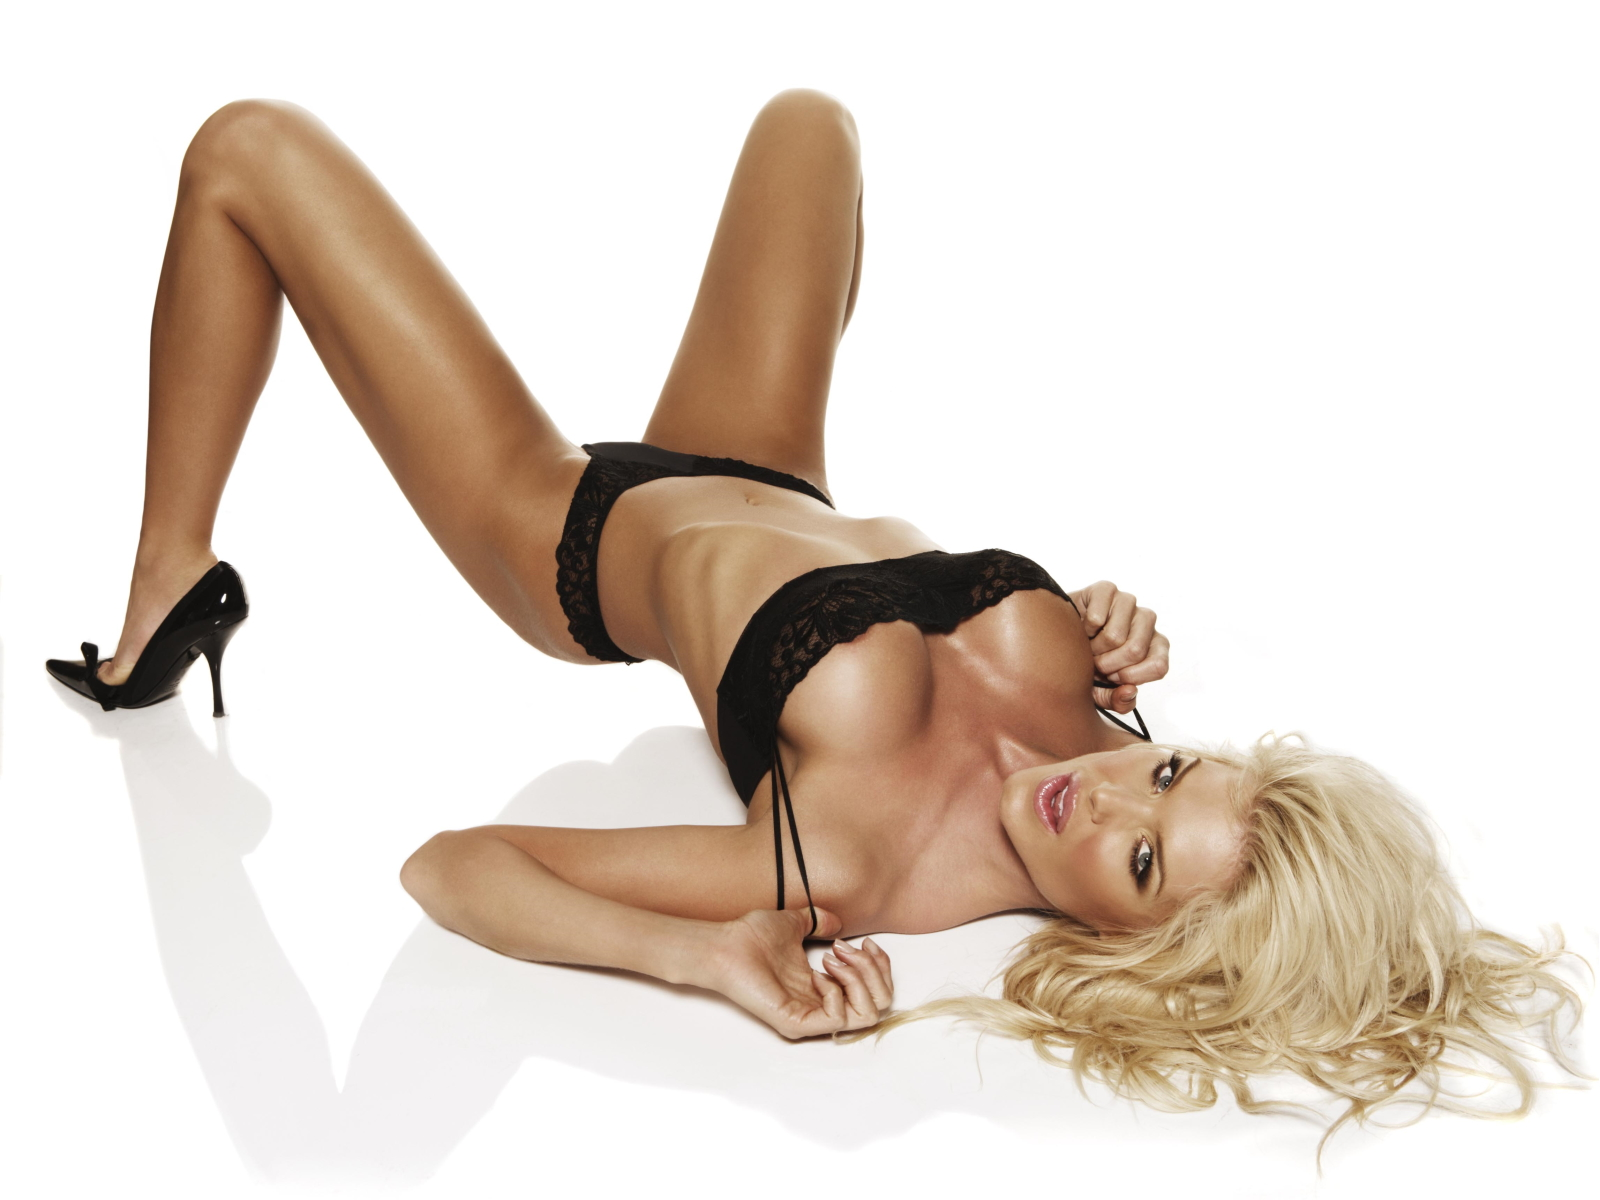 victoria silvstedt nude gallery: